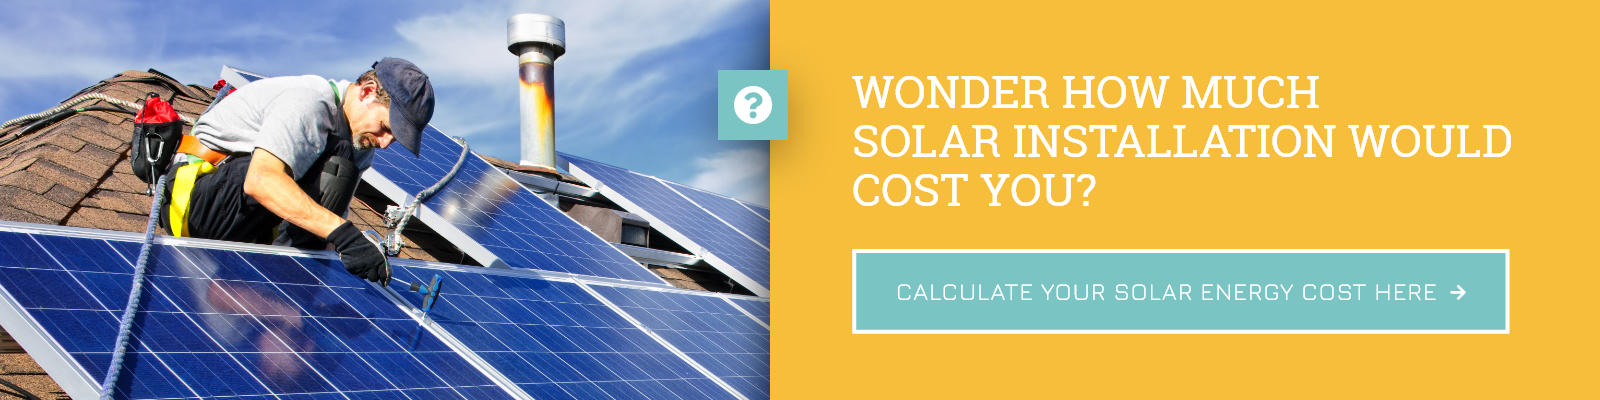 Solar choice roi calculator investment resultado da primeira fase do vest ufrn 2021